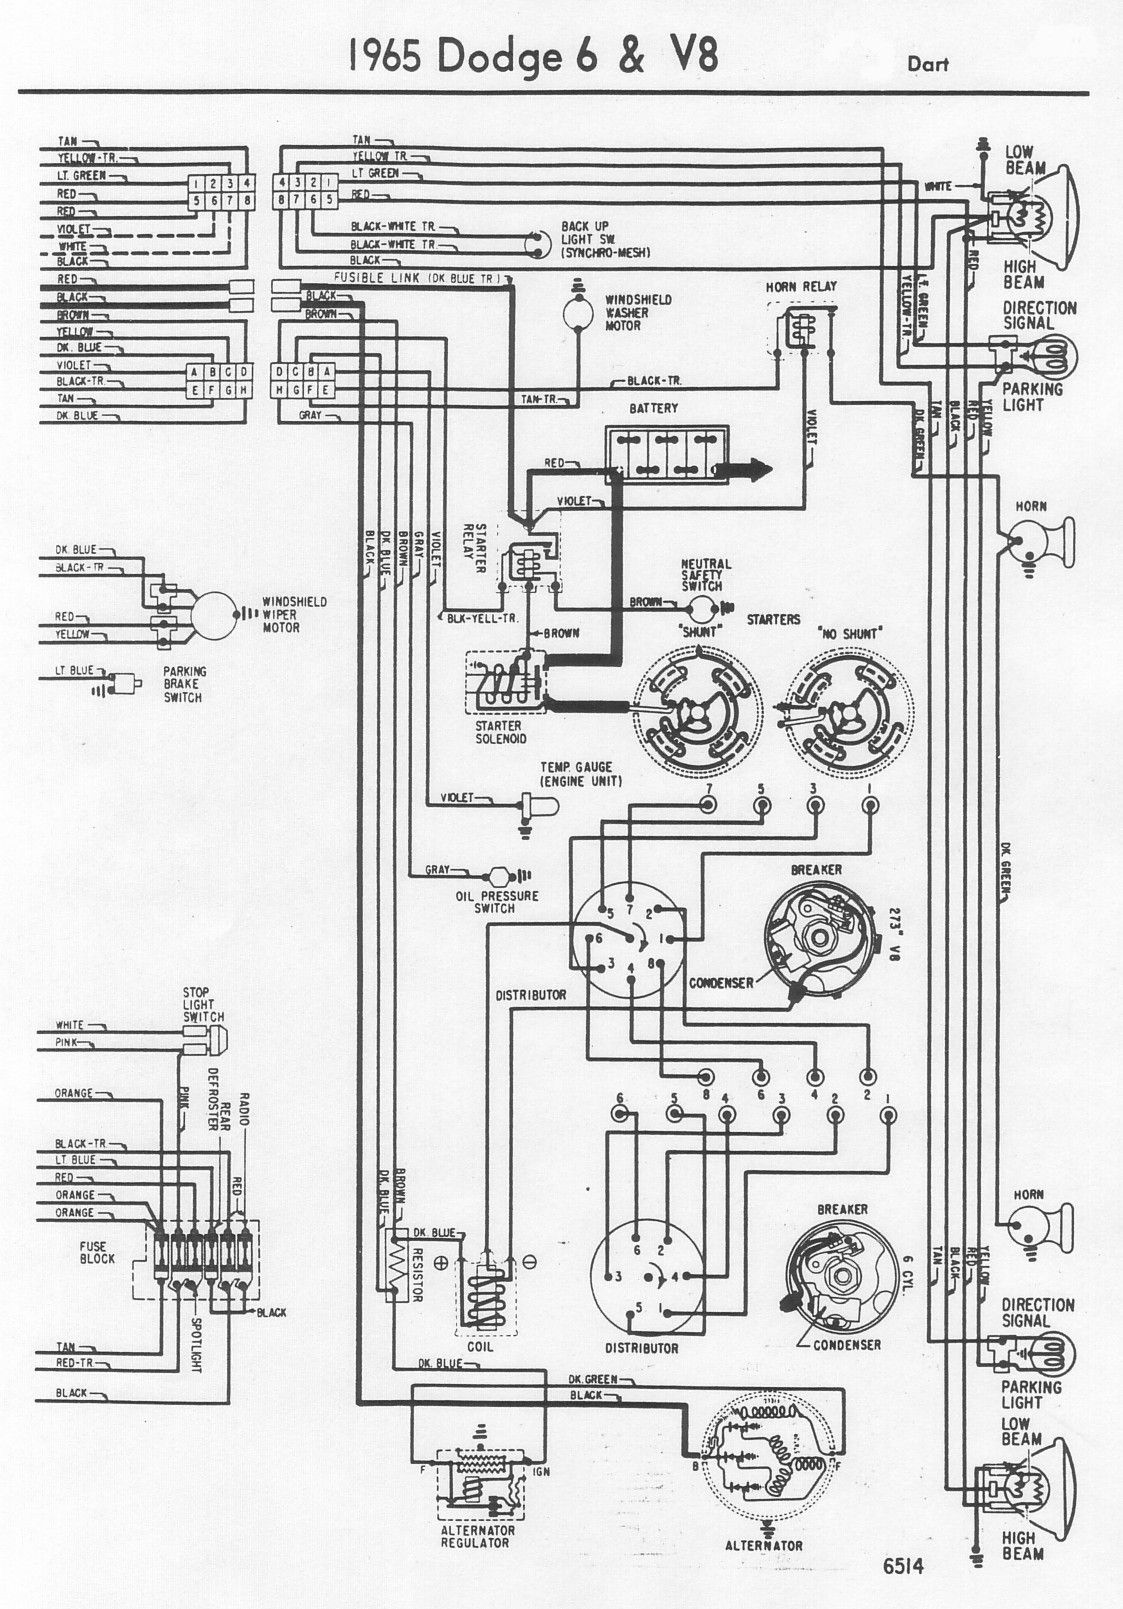 1964 dodge dart wiring diagram trusted wiring diagram u2022 rh soulmatestyle co 2011 Dodge Dakota Wiring Diagram 1974 Dodge Charger Wiring Diagram